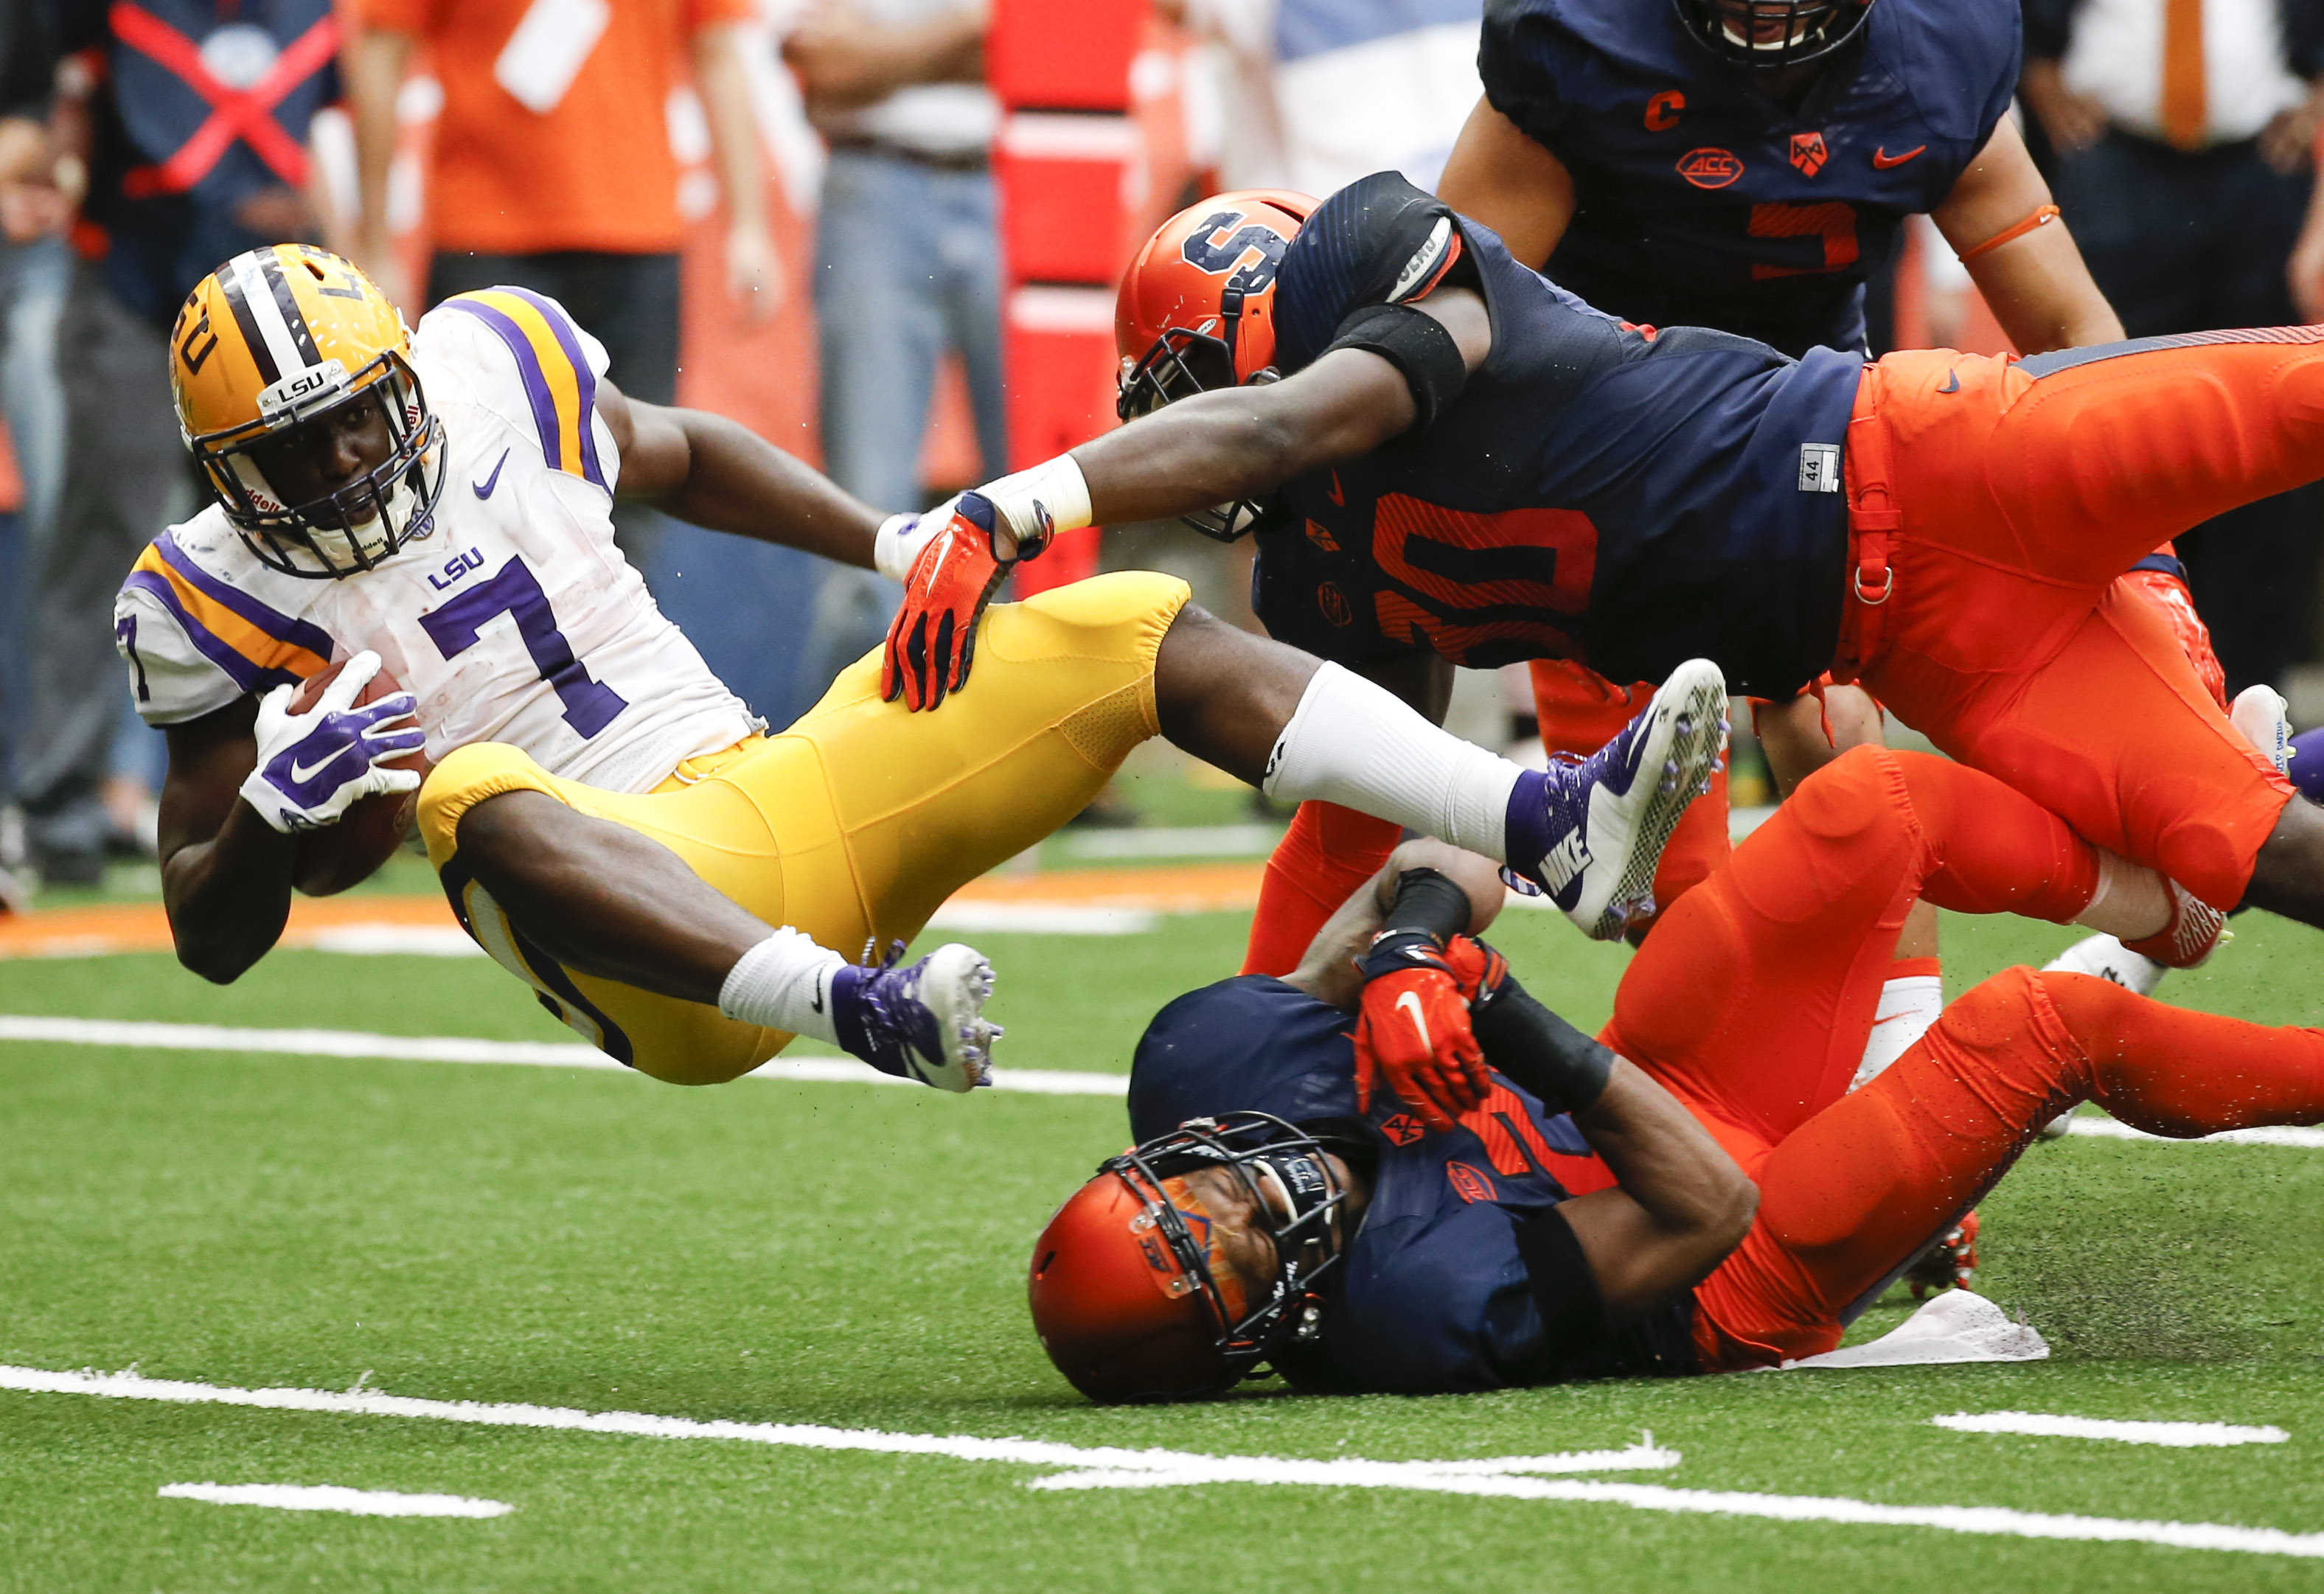 LSU running back Leonard Fournette (7) is tackled by Syracuse defenders Parris Bennett (30) and Chauncey Scissum (21) during the second half of an NCAA college football game on Saturday, Sept. 26, 2015, in Syracuse, N.Y. (AP Photo/Mike Groll)